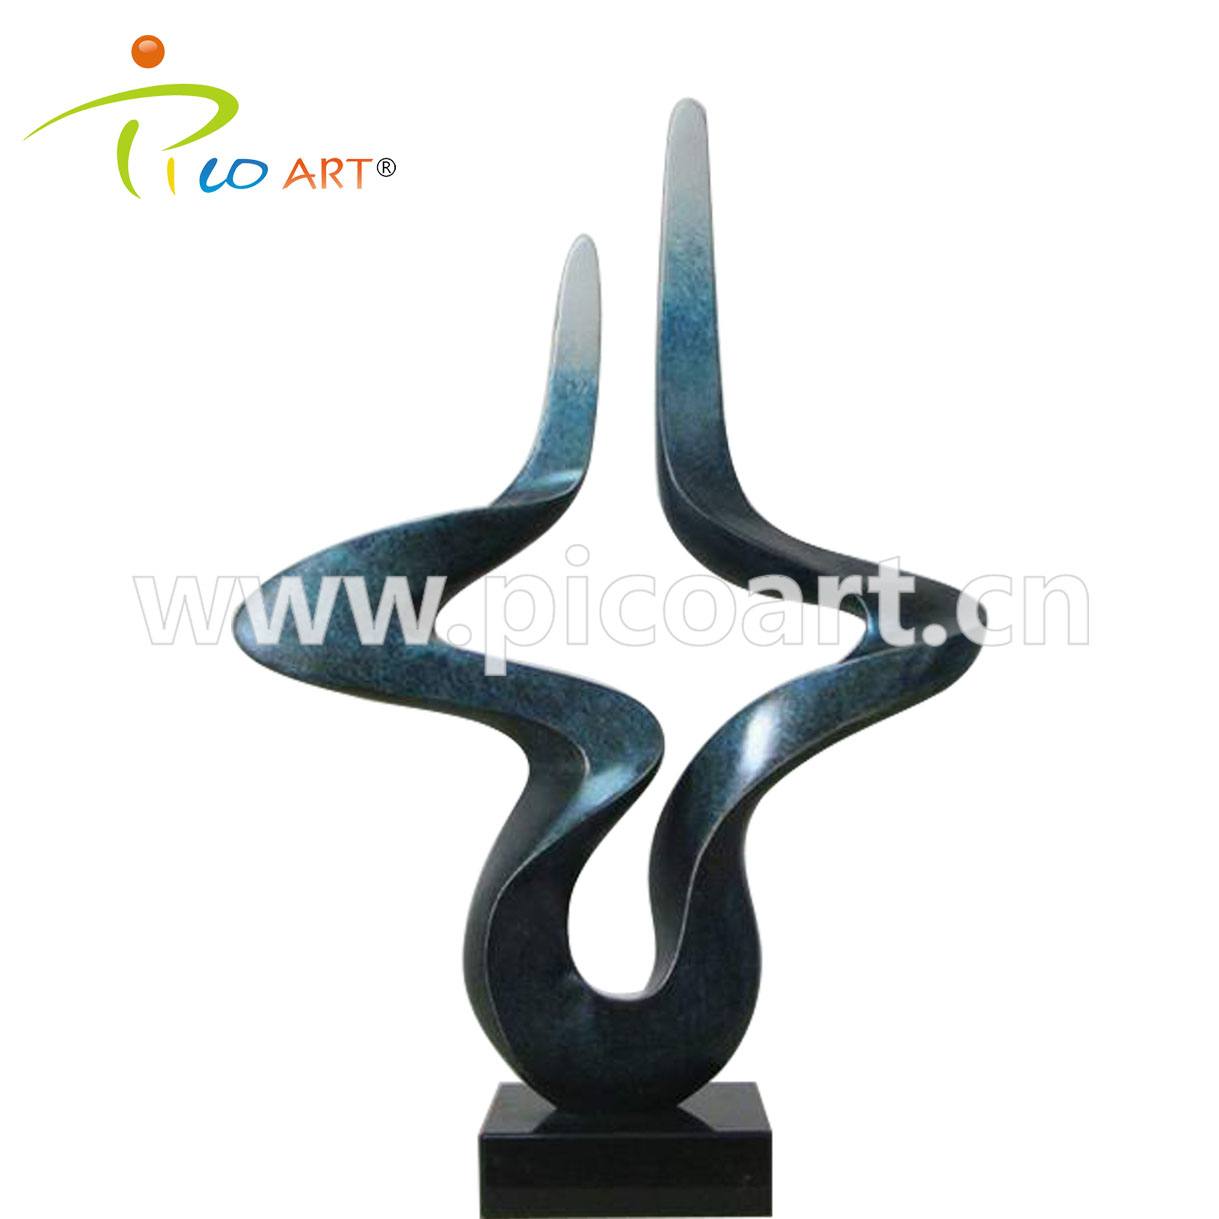 Handmade Abstract Polished Interior Eletro Plating Polyester Resin Sculpture